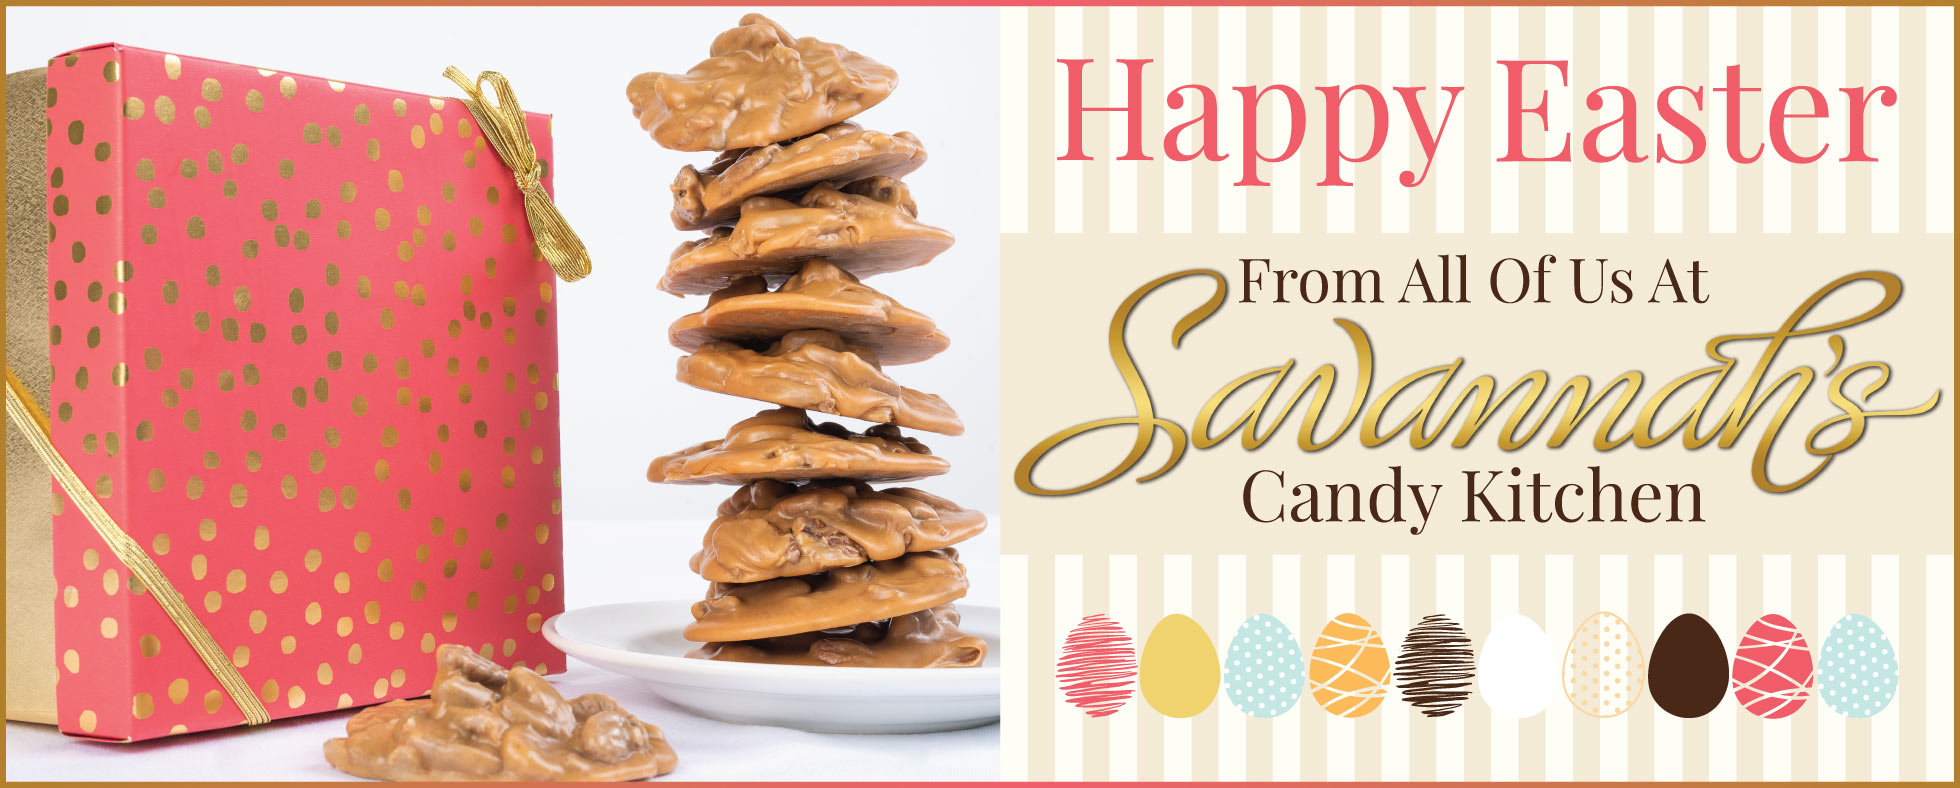 Happy Easter! From All Of Us At Savannah's Candy Kitchen!